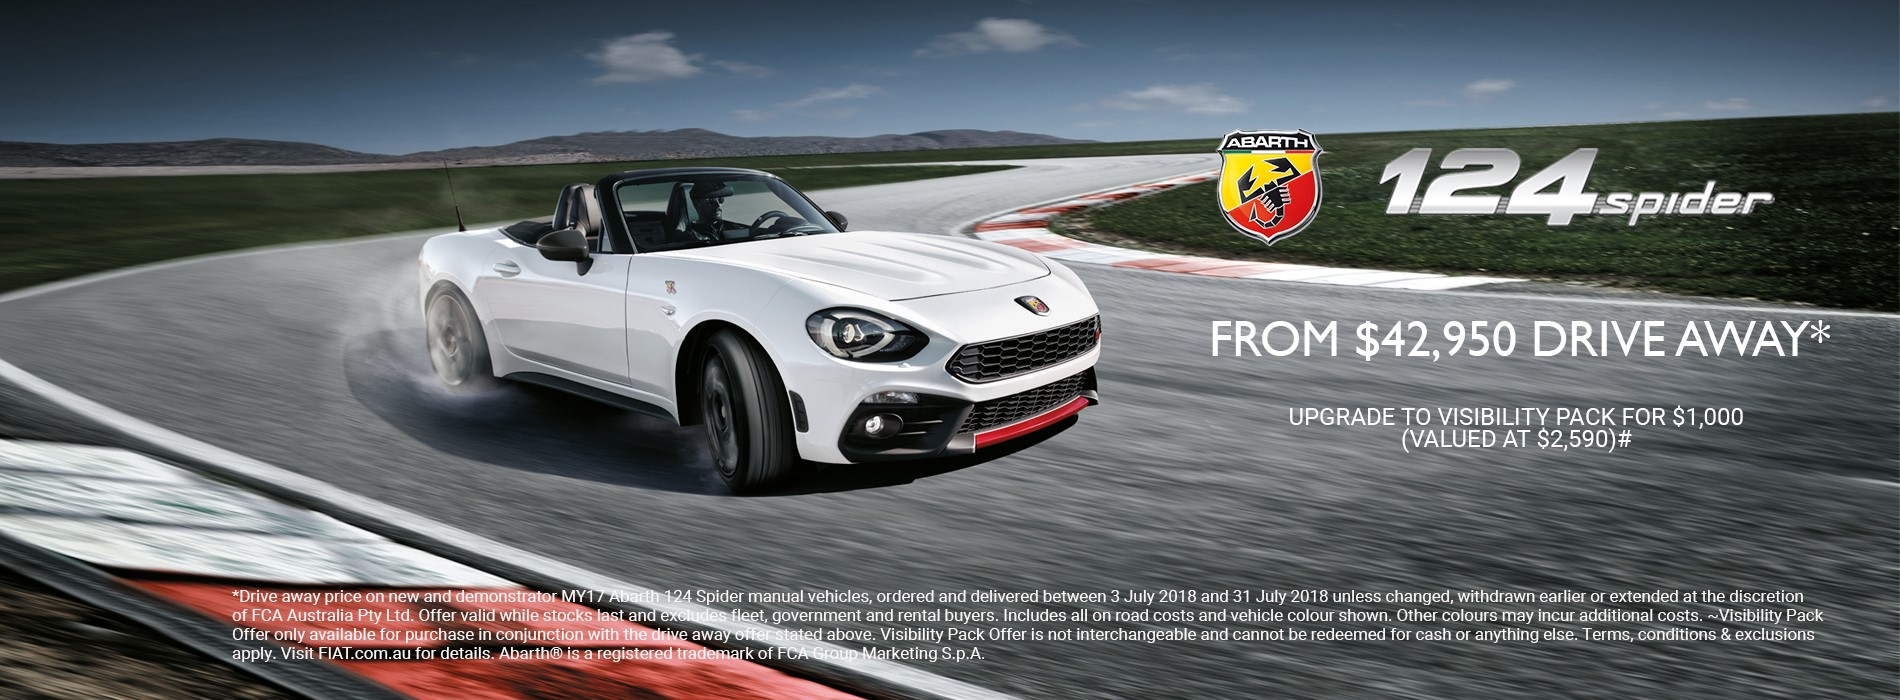 124 Spider Drive Away Offer